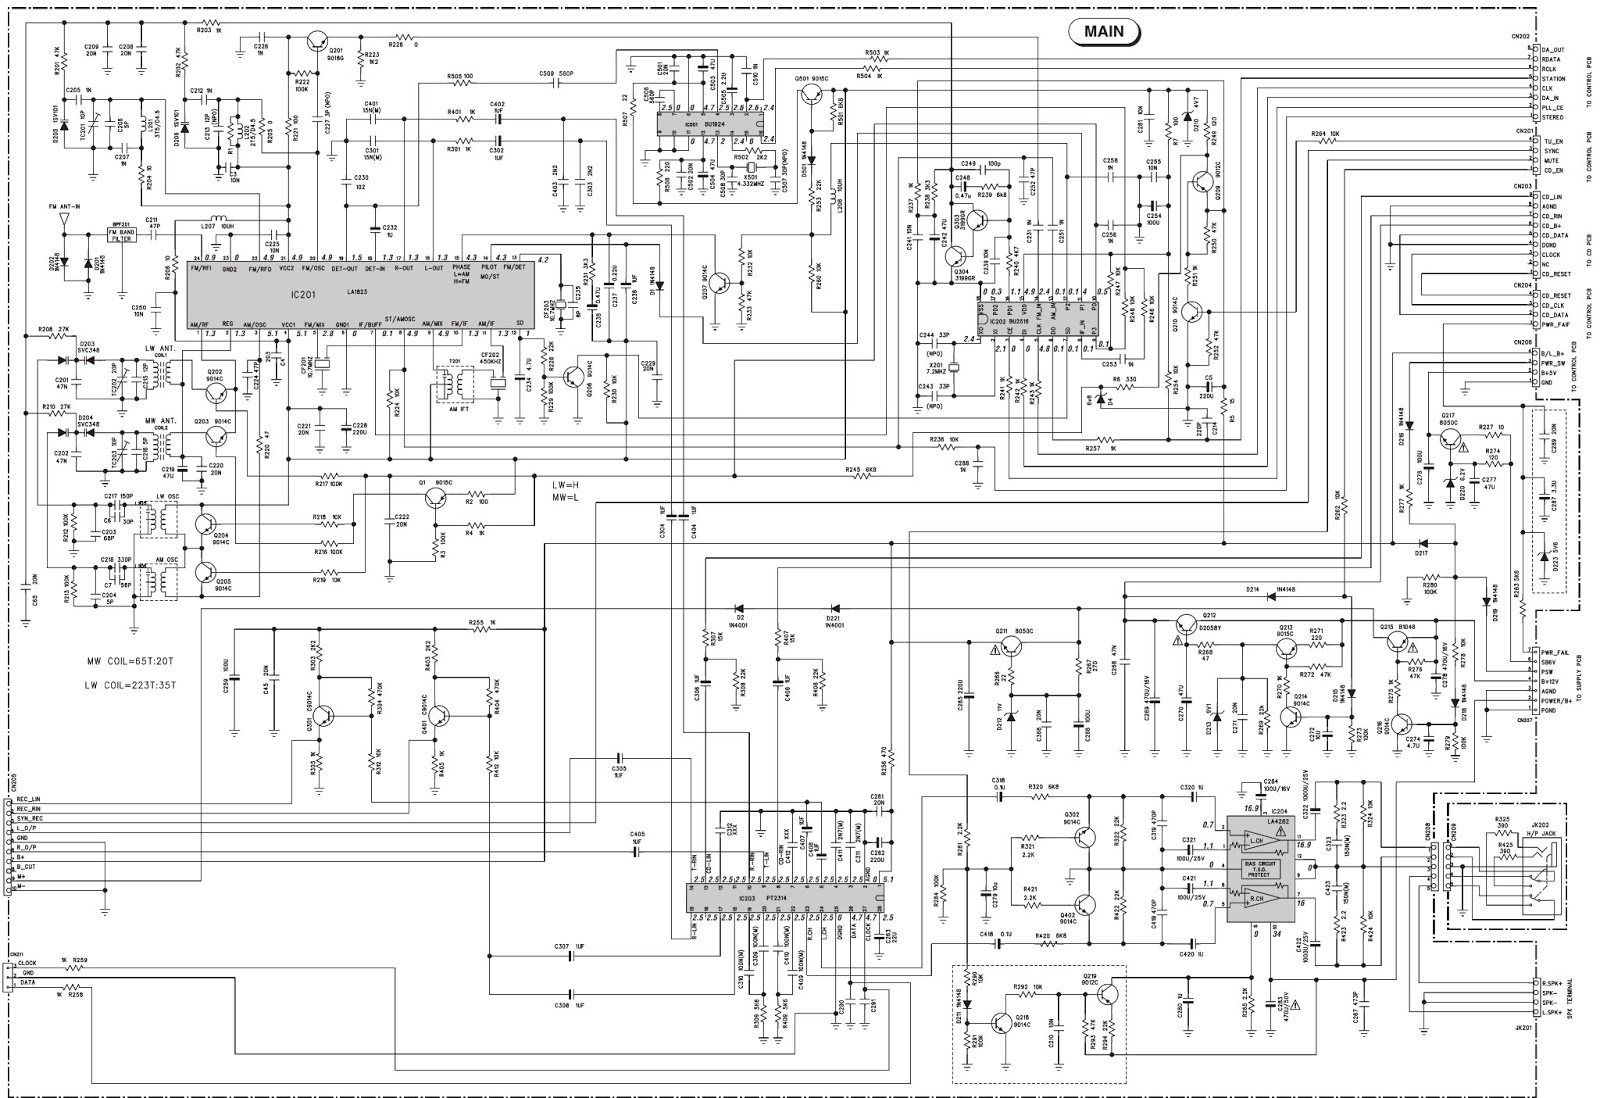 yamaha+amp+section.bmp yamaha _ thomson cs 100 cs 105 schematic diagram [circuit yamaha schematic diagram at nearapp.co